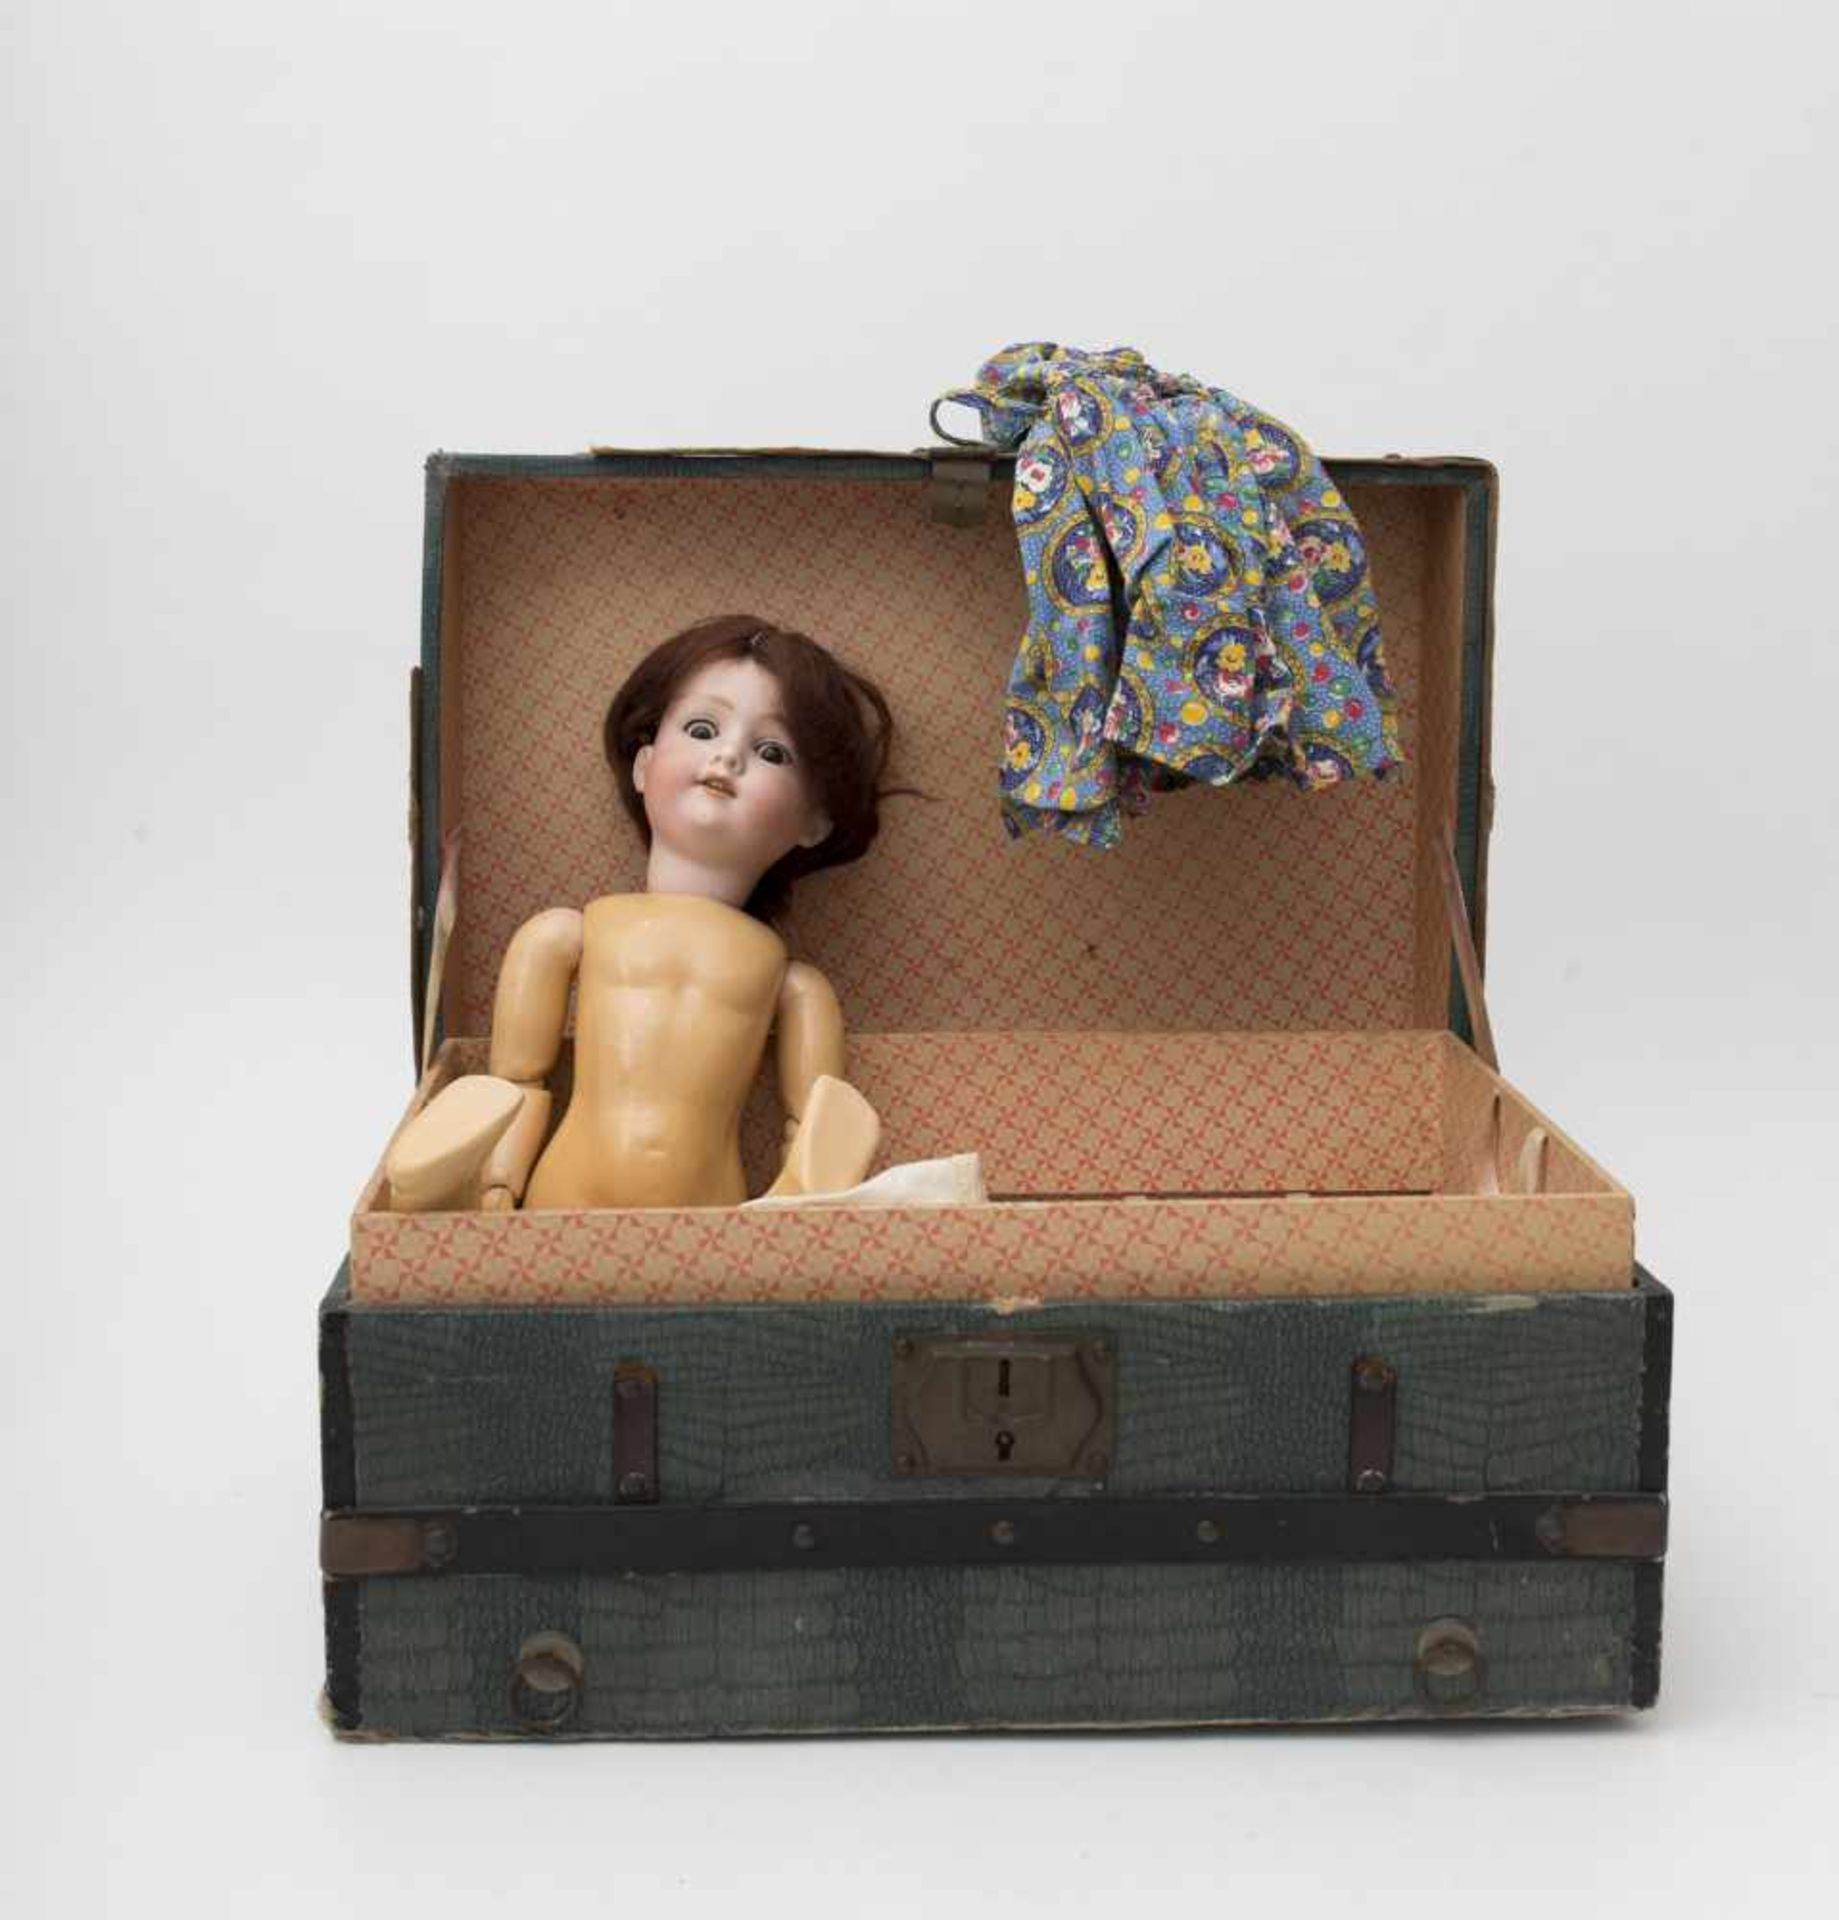 """Doll With biscuit head, open mouth, branded """"AM 390"""", brown sleeping eyes, Toddler-type"""